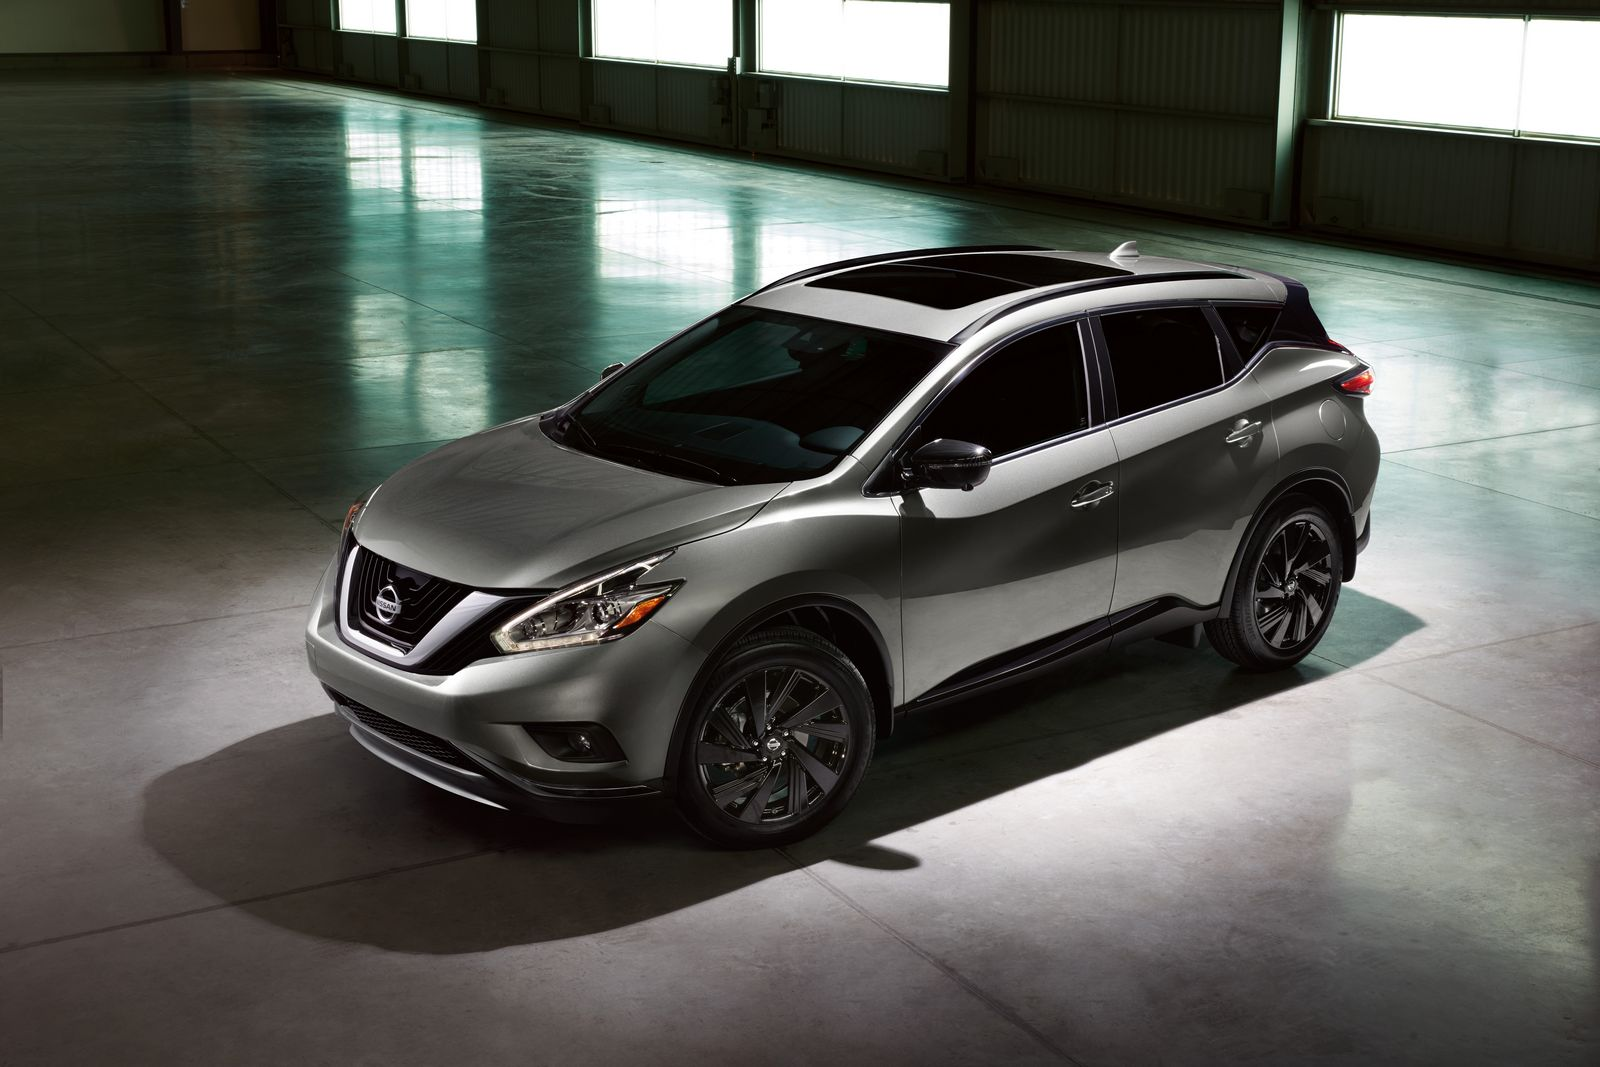 Like Rogue, the 2017.5 Murano Special Edition package adds strong visual impact to one of Nissan's fastest growing models. Offered on the Platinum grade level, it includes exclusive black 20-inch Midnight Edition aluminum-alloy wheels, black roof rails, black mirror caps, black splash guards and available Midnight Edition floor mats. It is offered in a choice of Pearl White, Cayenne Red, Gun Metallic and Magnetic Black. The package has an MSRP1 of $1,195 USD and is on sale now.